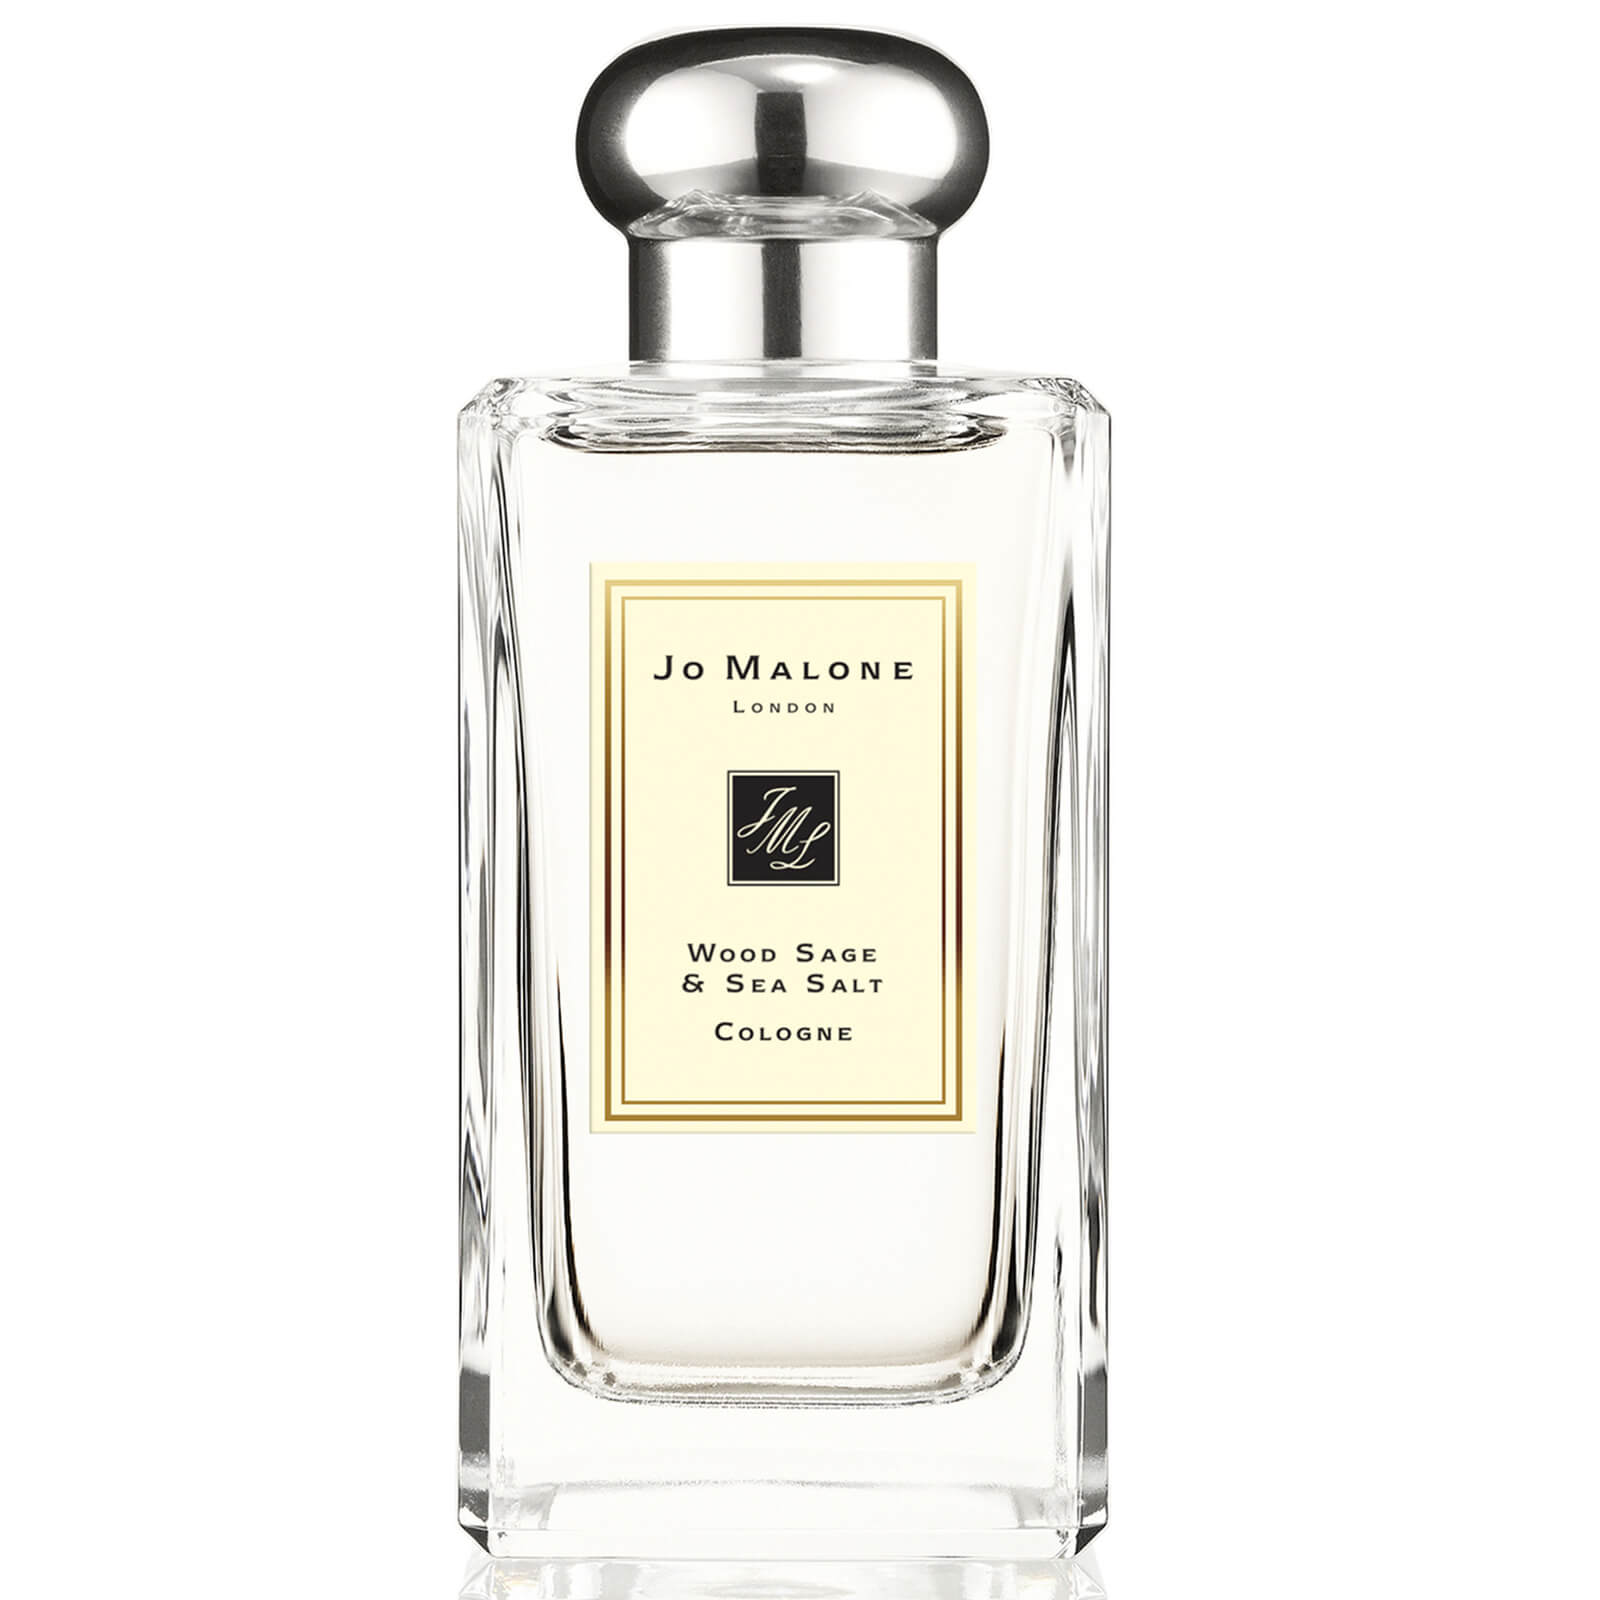 Jo Malone: Free Wild Bluebell Cologne (9ml) and Wood Sage & Sea Salt Body Creme (15ml) with $65+ Purchase